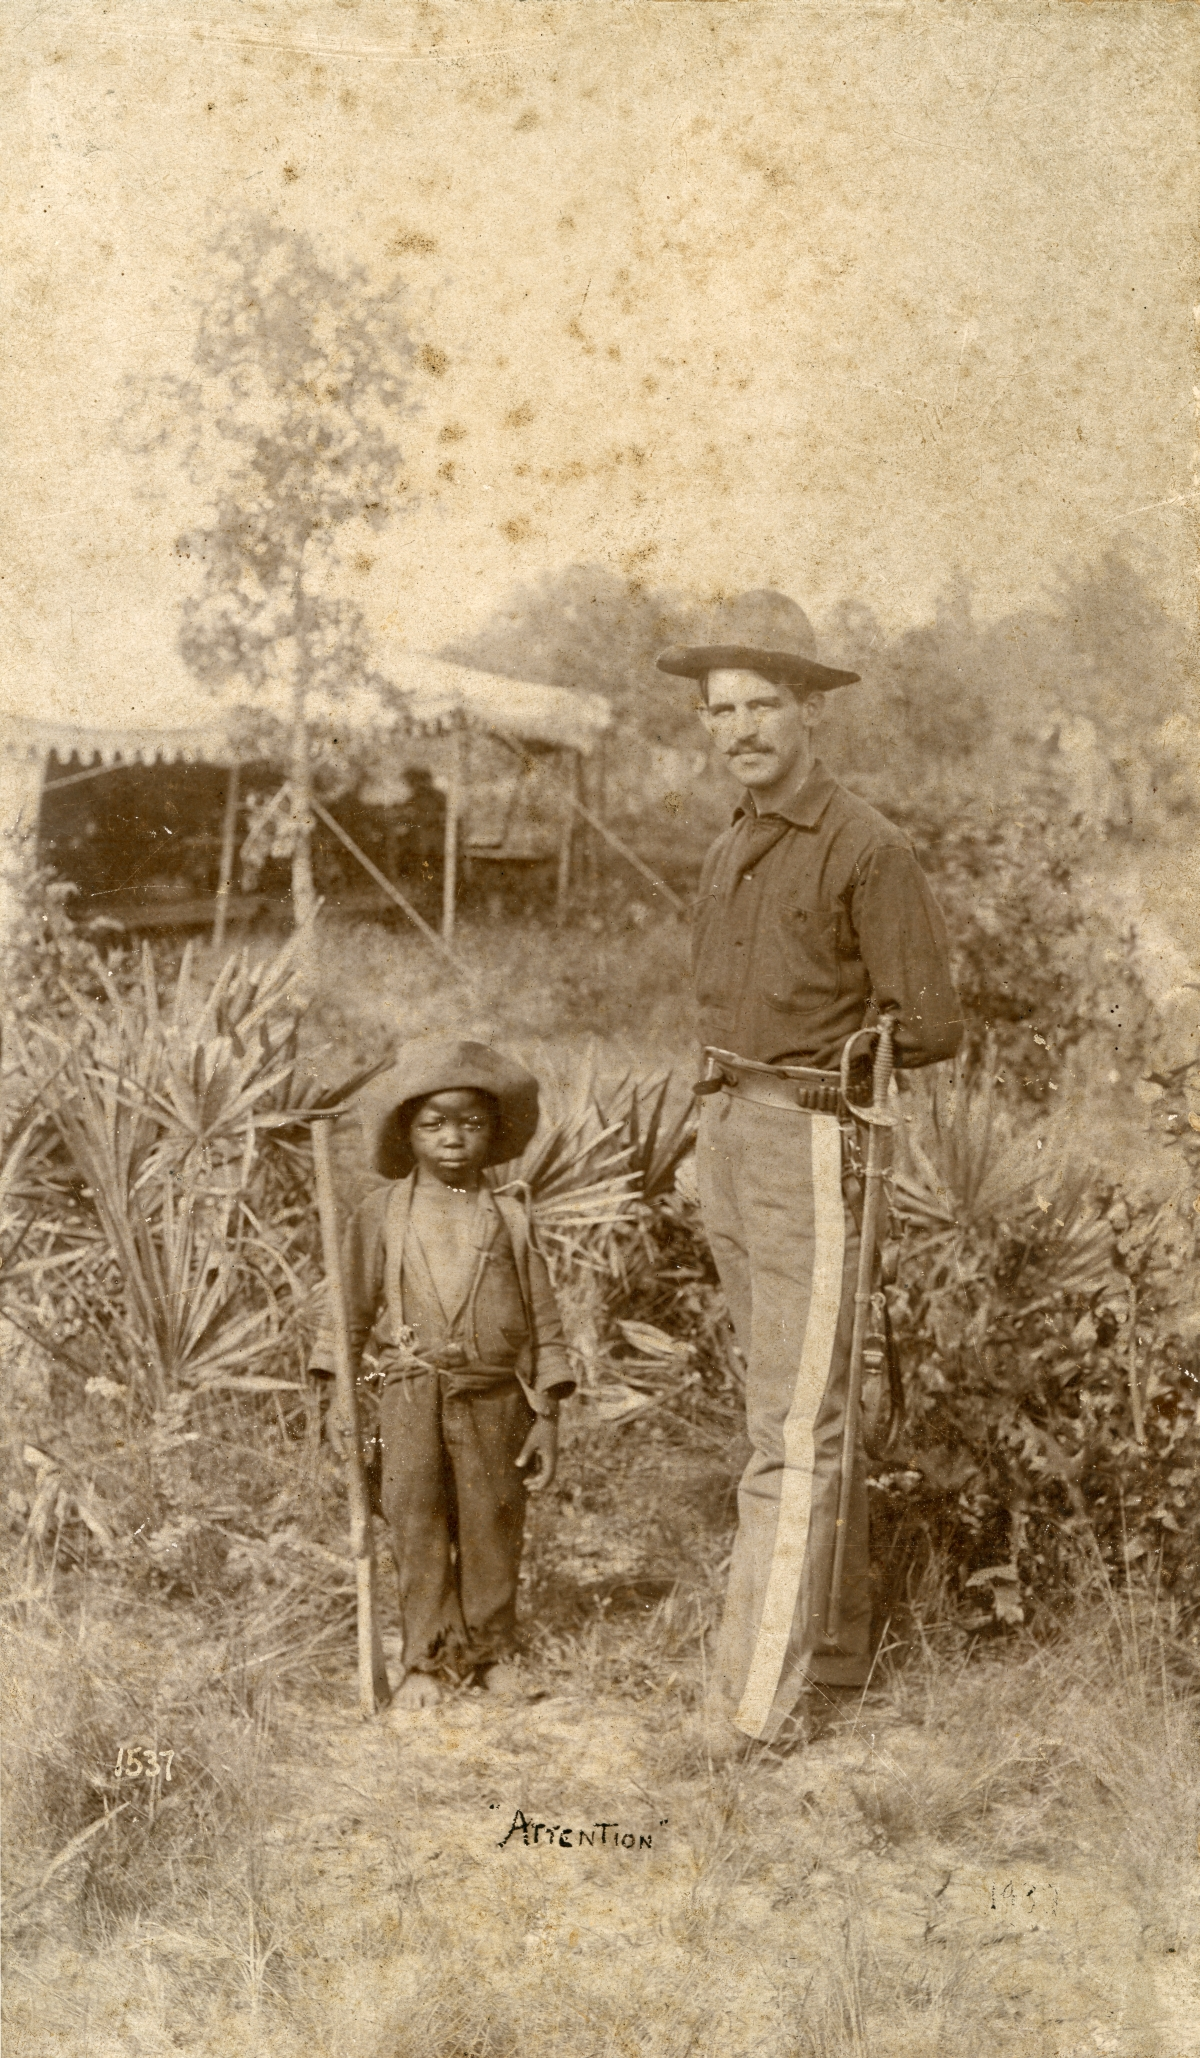 Boy with wooden gun posing with a soldier in Jacksonville.